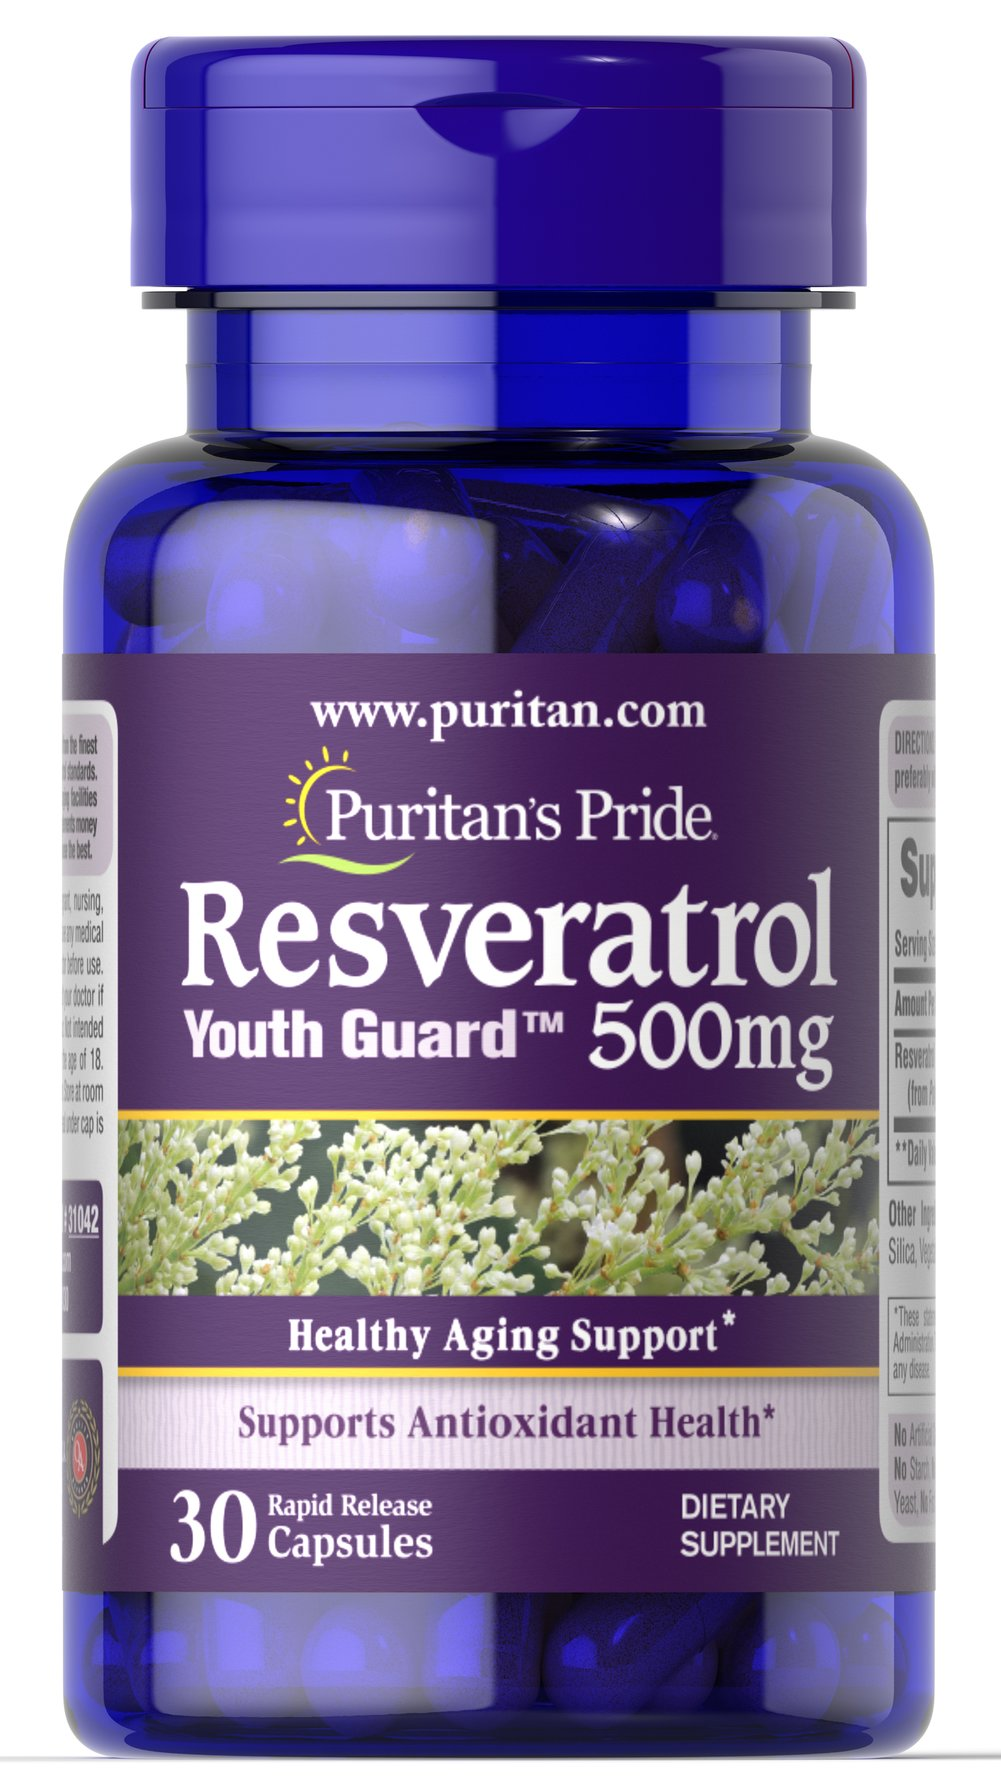 Resveratrol 500 mg <p></p>•    Supports heart health by supporting blood flow and vascular function**<br />•    Antioxidant support**<br />•    Combats free radicals**<br />•    Helps support sugar metabolism**<br /><br />Resveratrol is the beneficial ingredient found in red wine. Resveratrol supports heart health by supporting blood flow and vascu